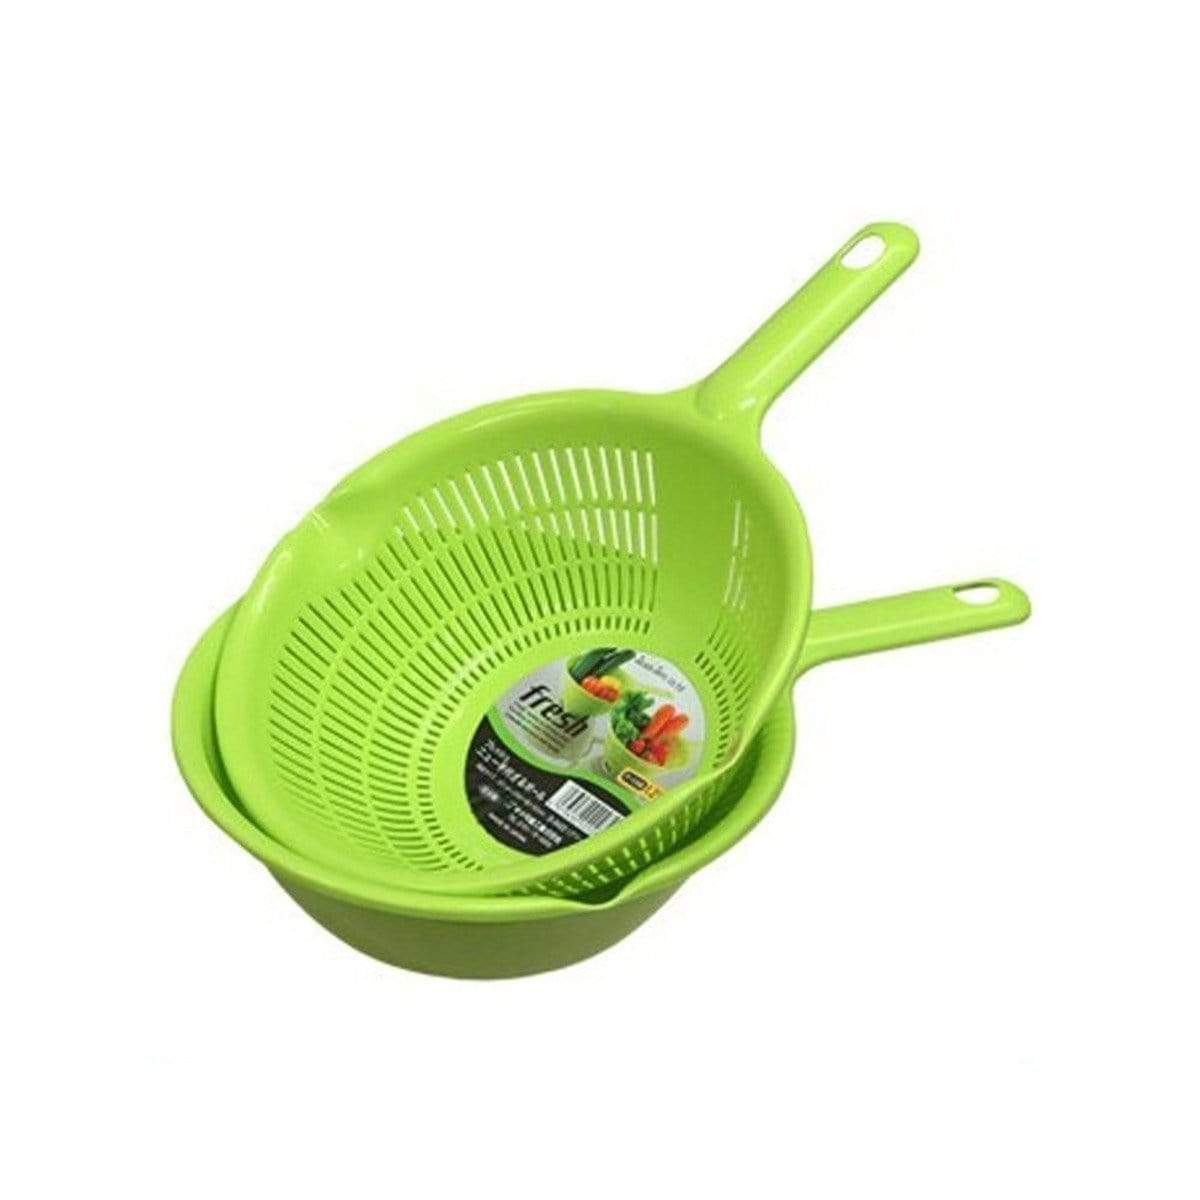 Japanese Plastic Colander Draining Washing Basket With Handle Green